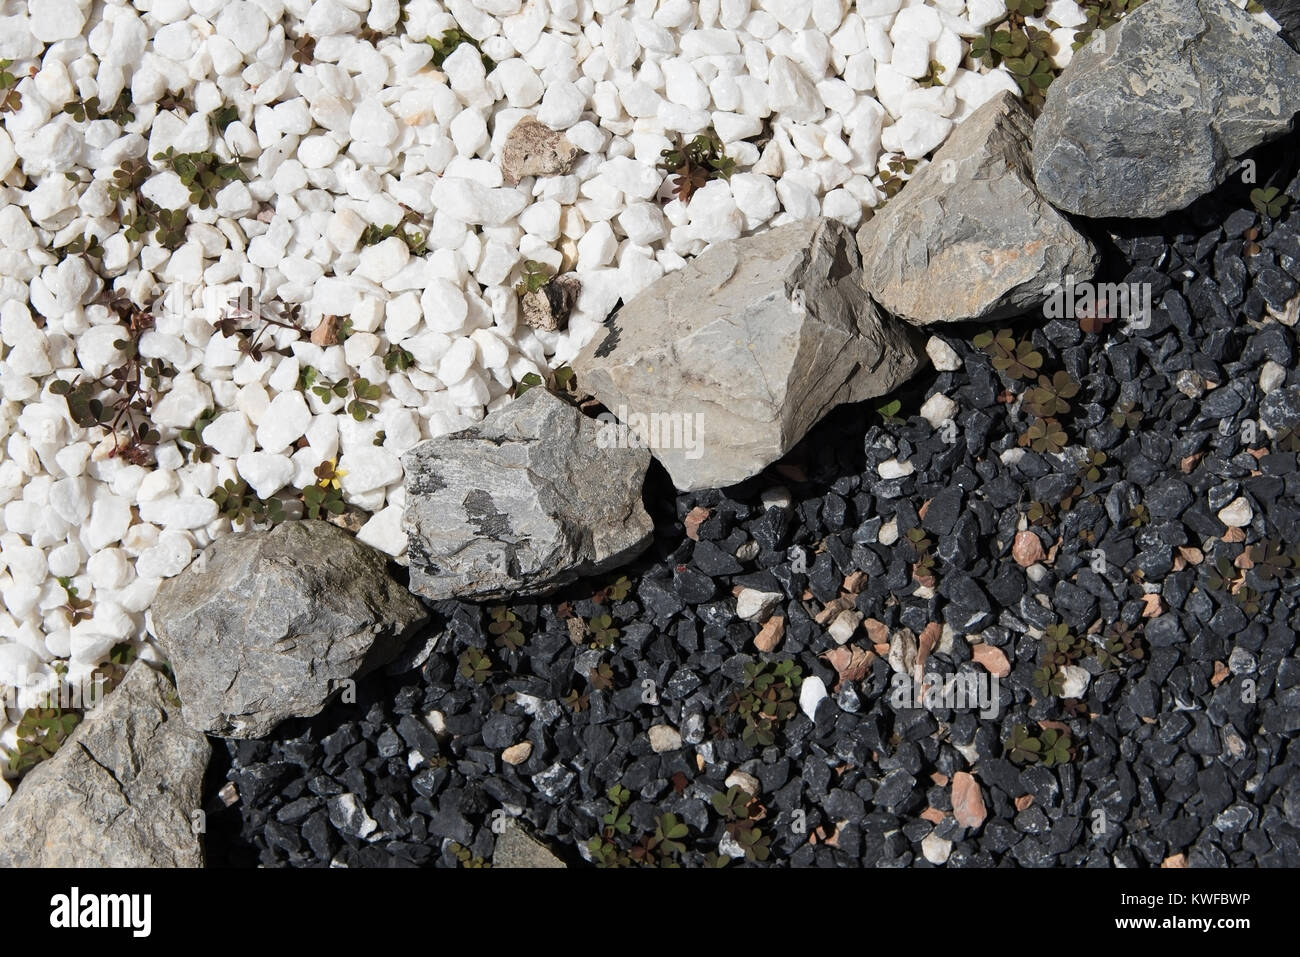 Black and White Decorative Garden Stones Divided Contrasting each other - Stock Image